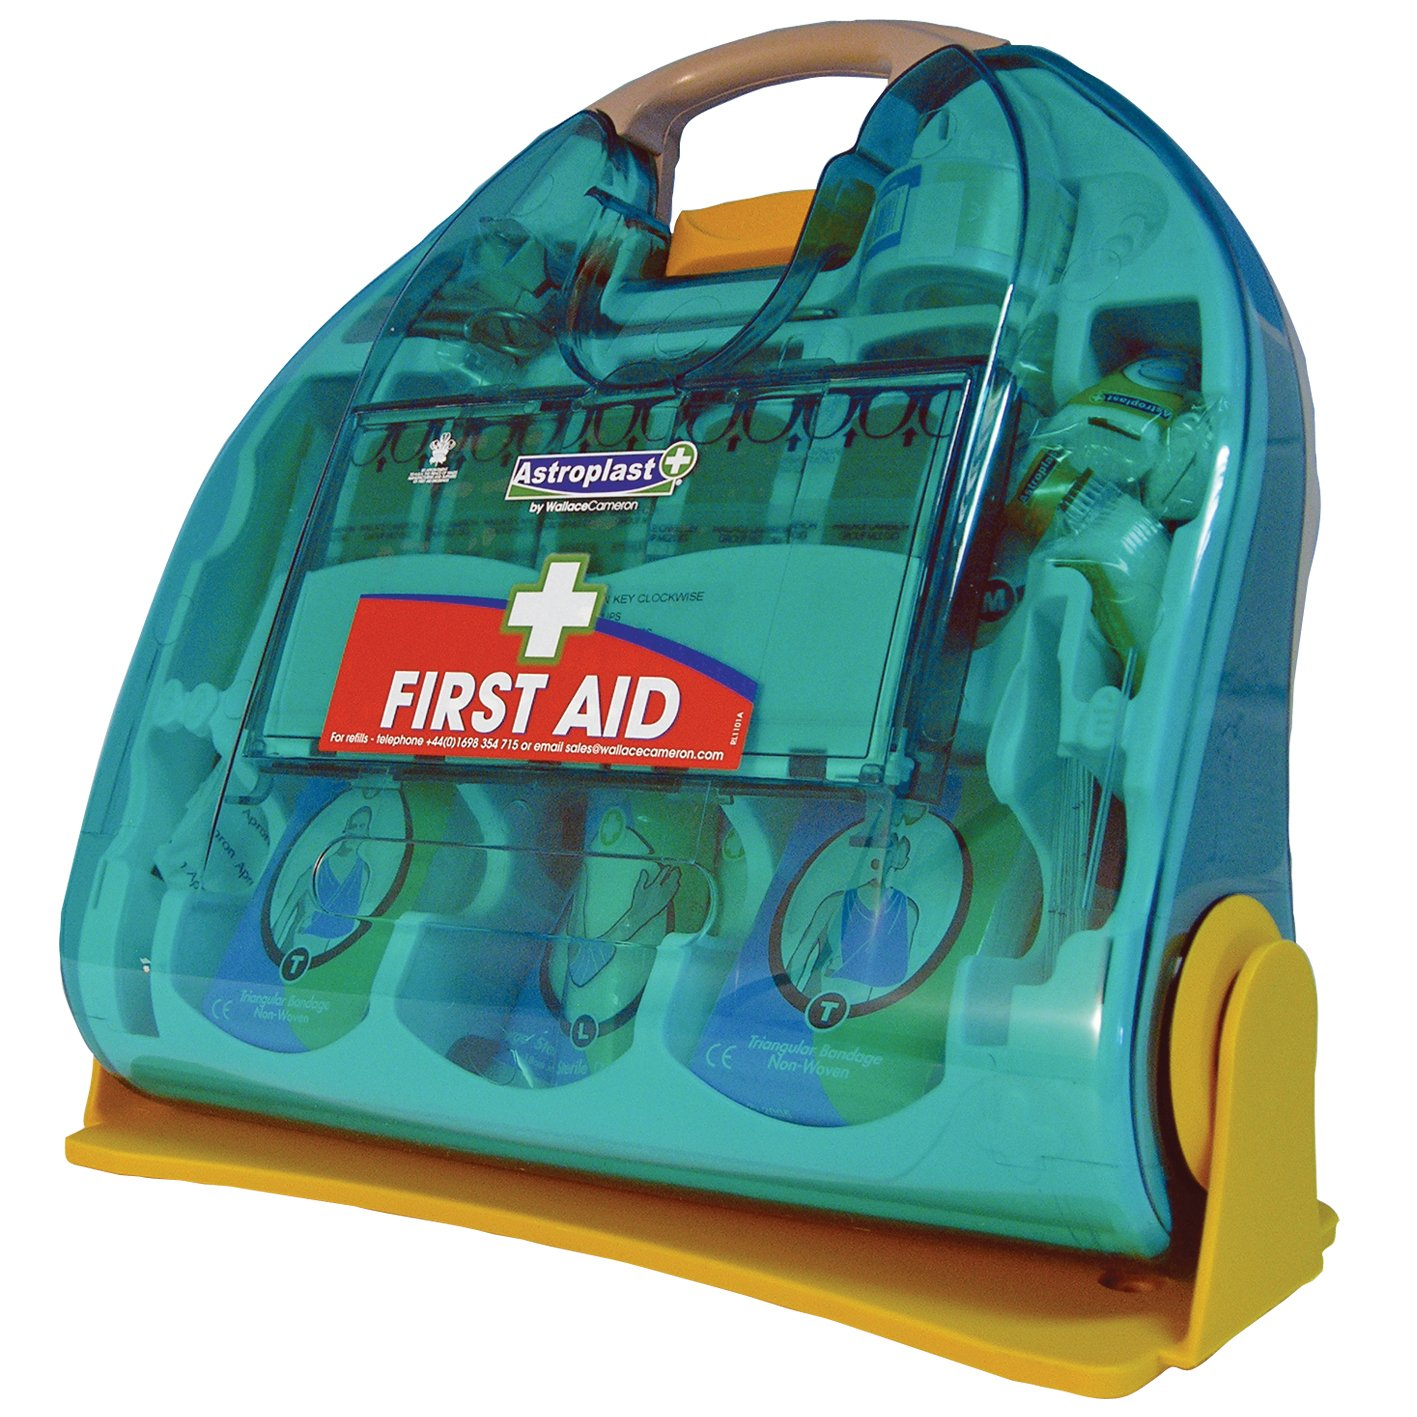 Astroplast Adulto Premier 50 Person First Aid Kit by Astroplast